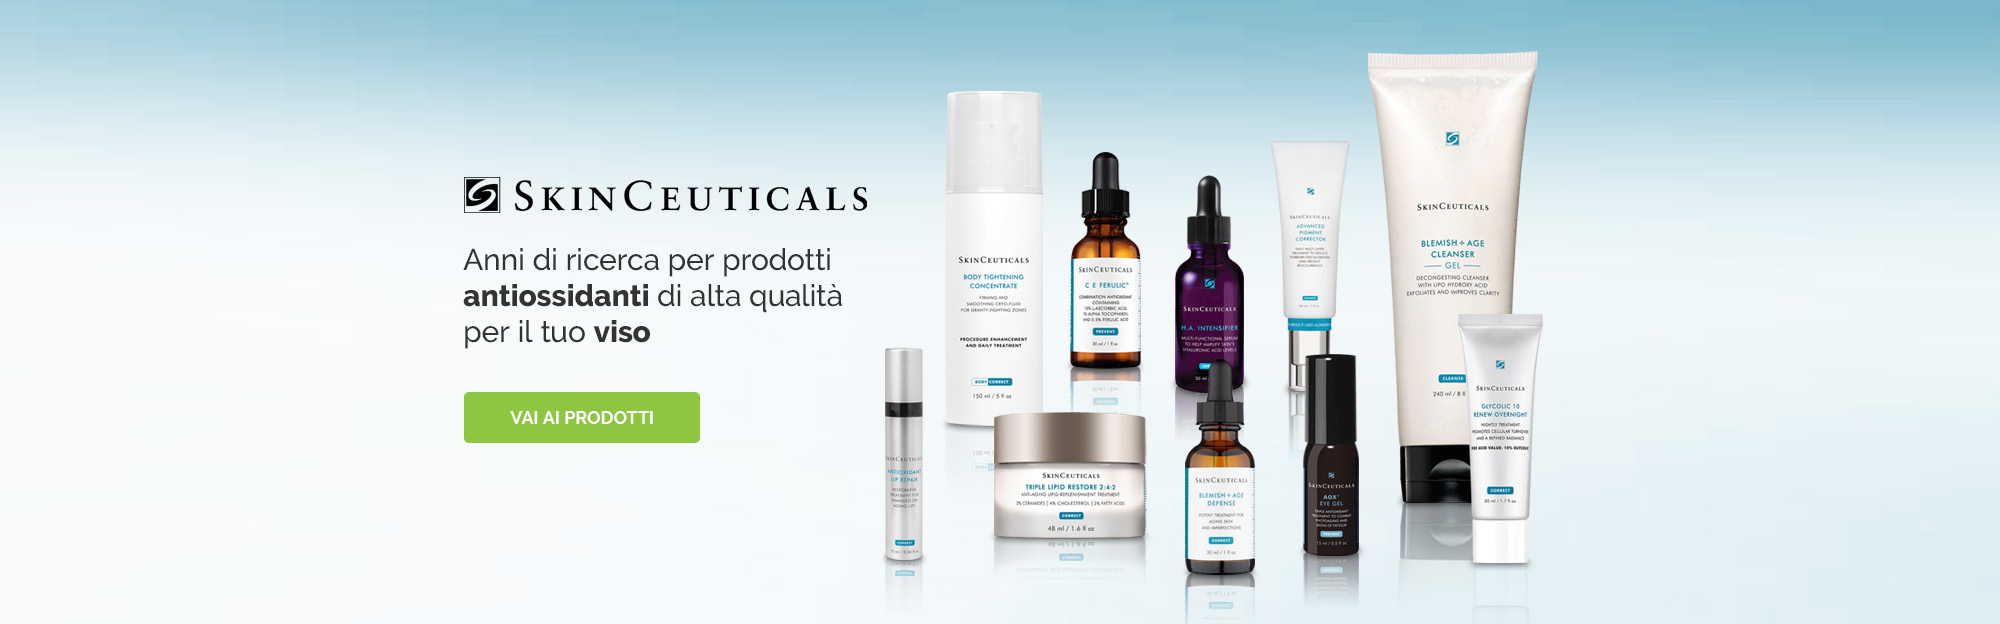 Slide 03 - Skinceuticals